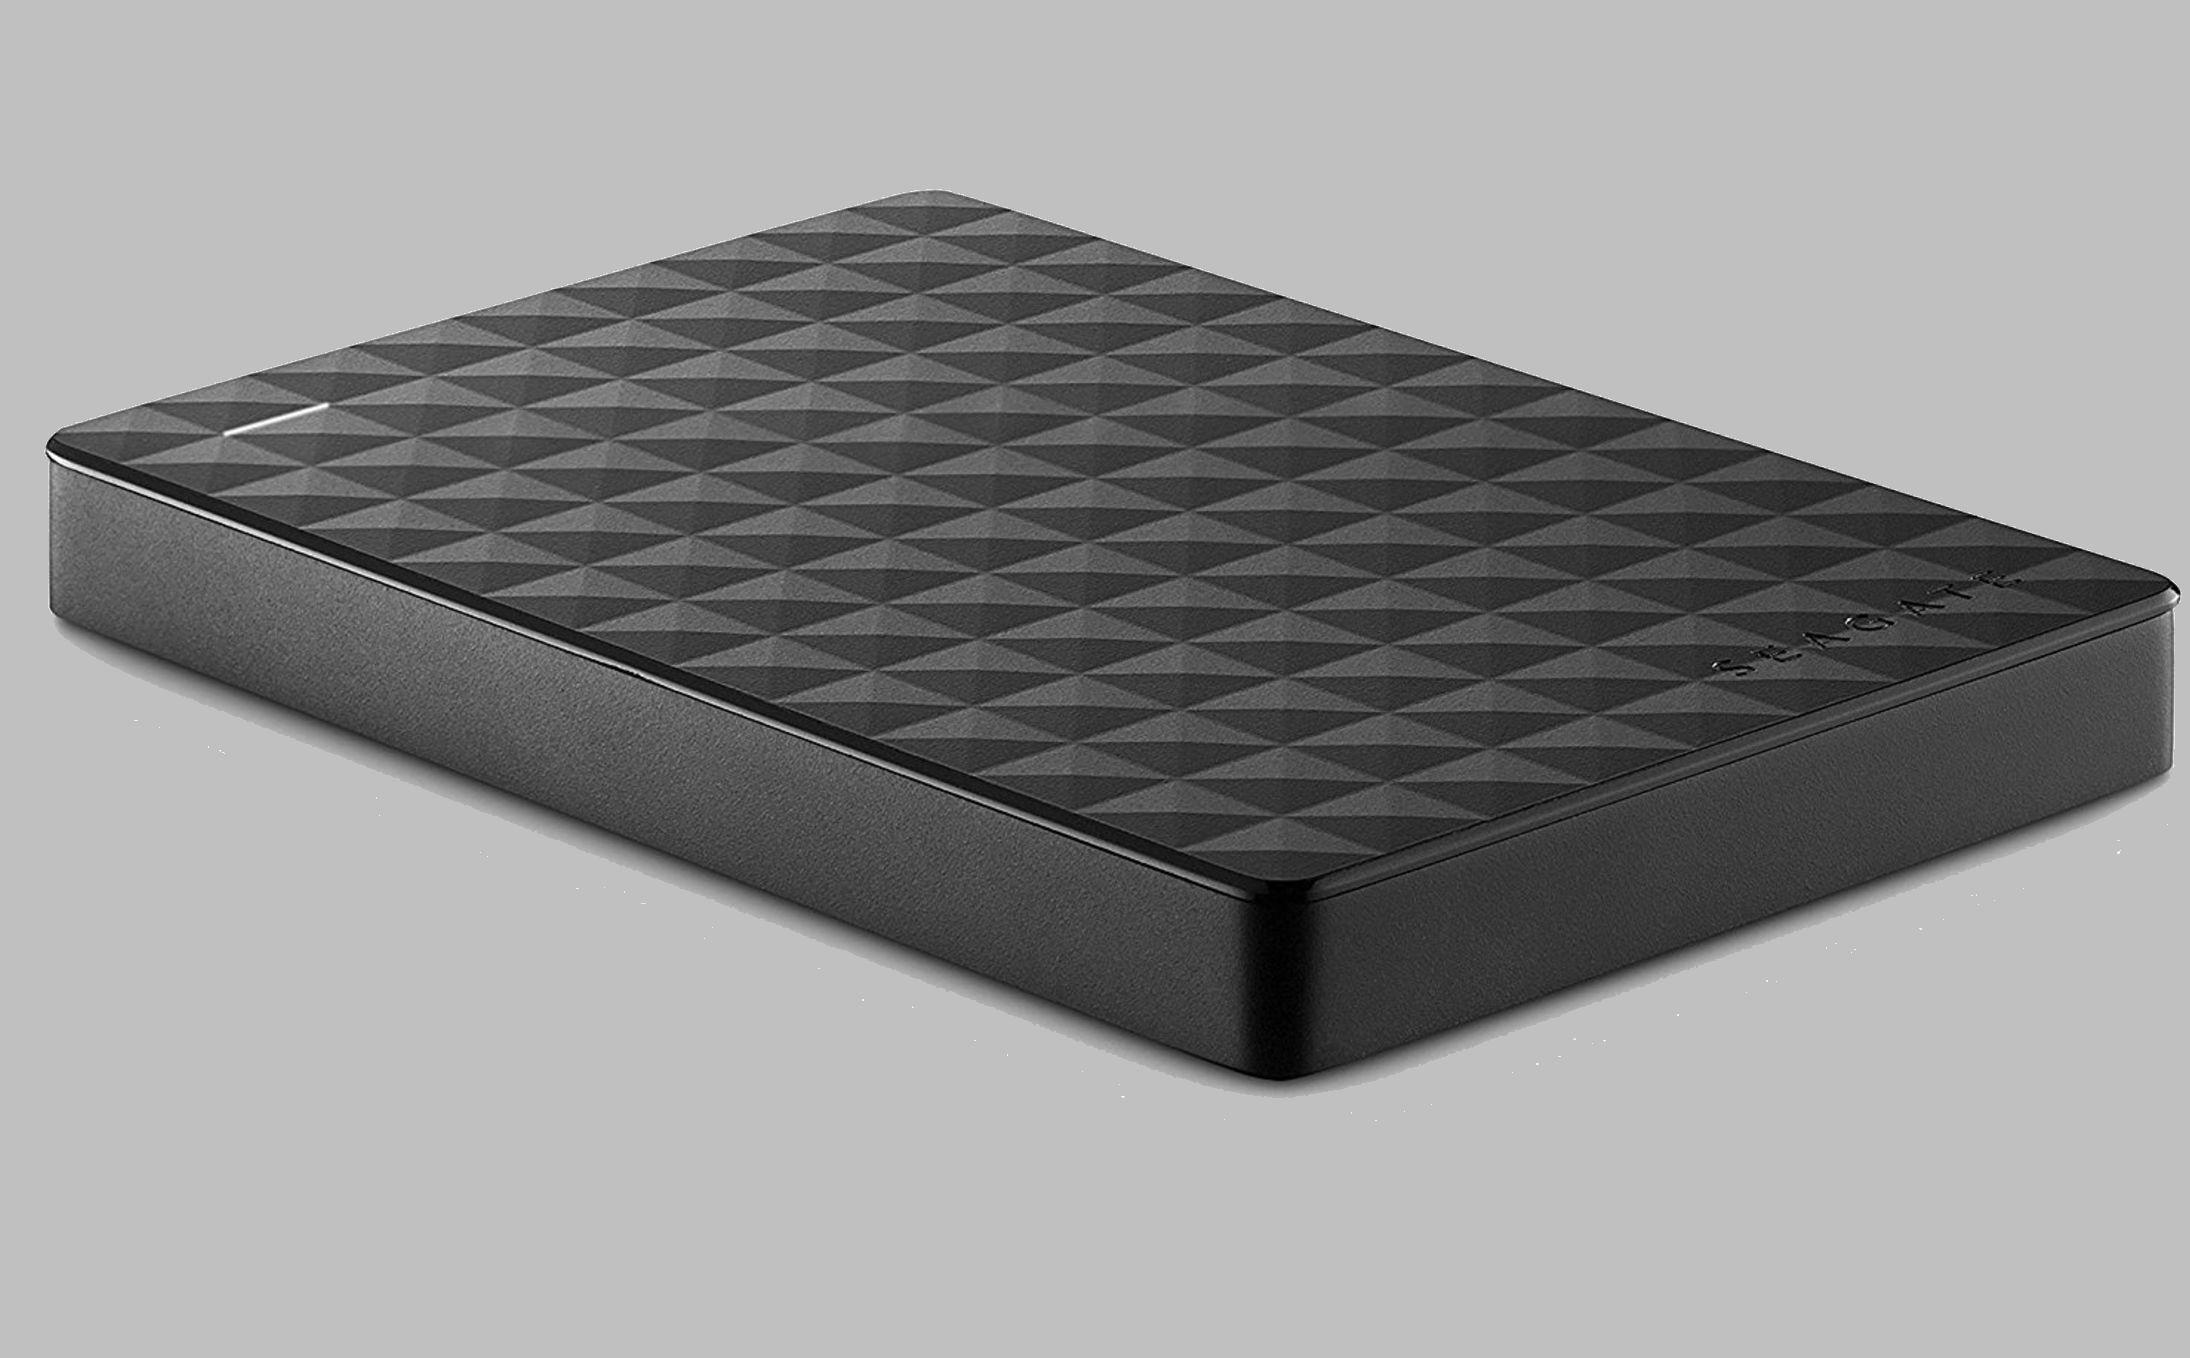 seagate-expansion-4tb-portable-gray-background